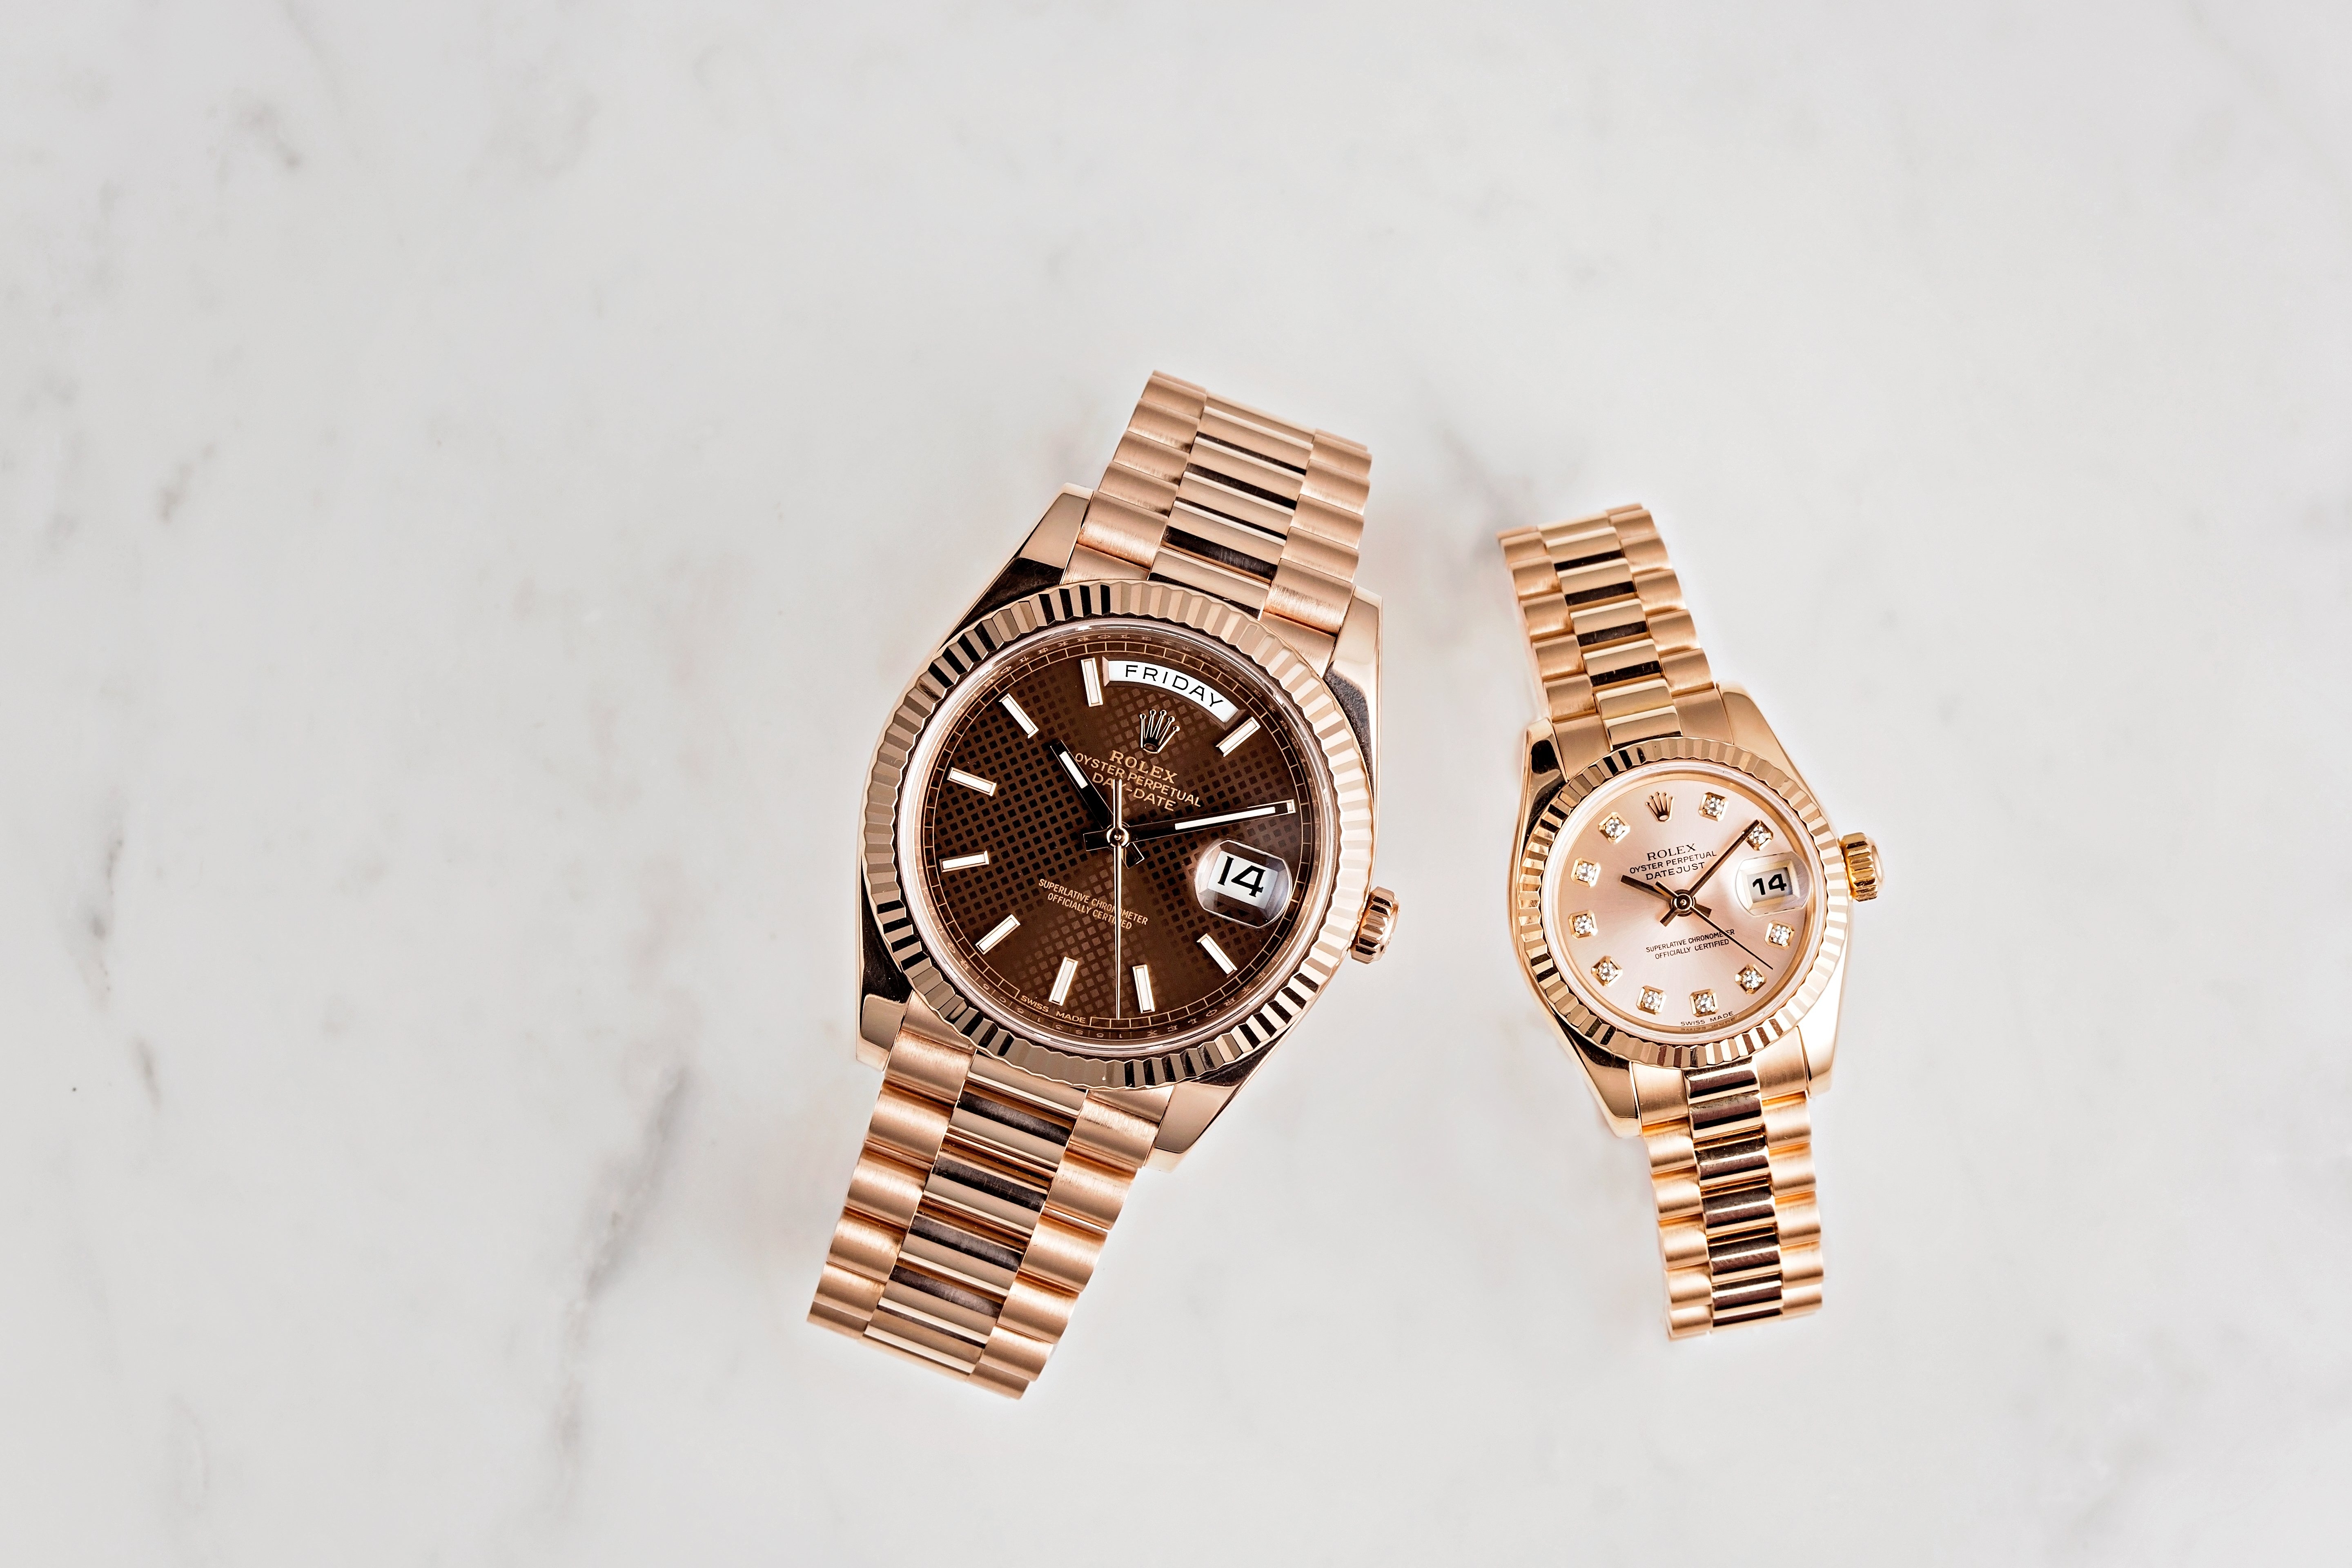 Rolex President watches are a great Valentine's Day gifts